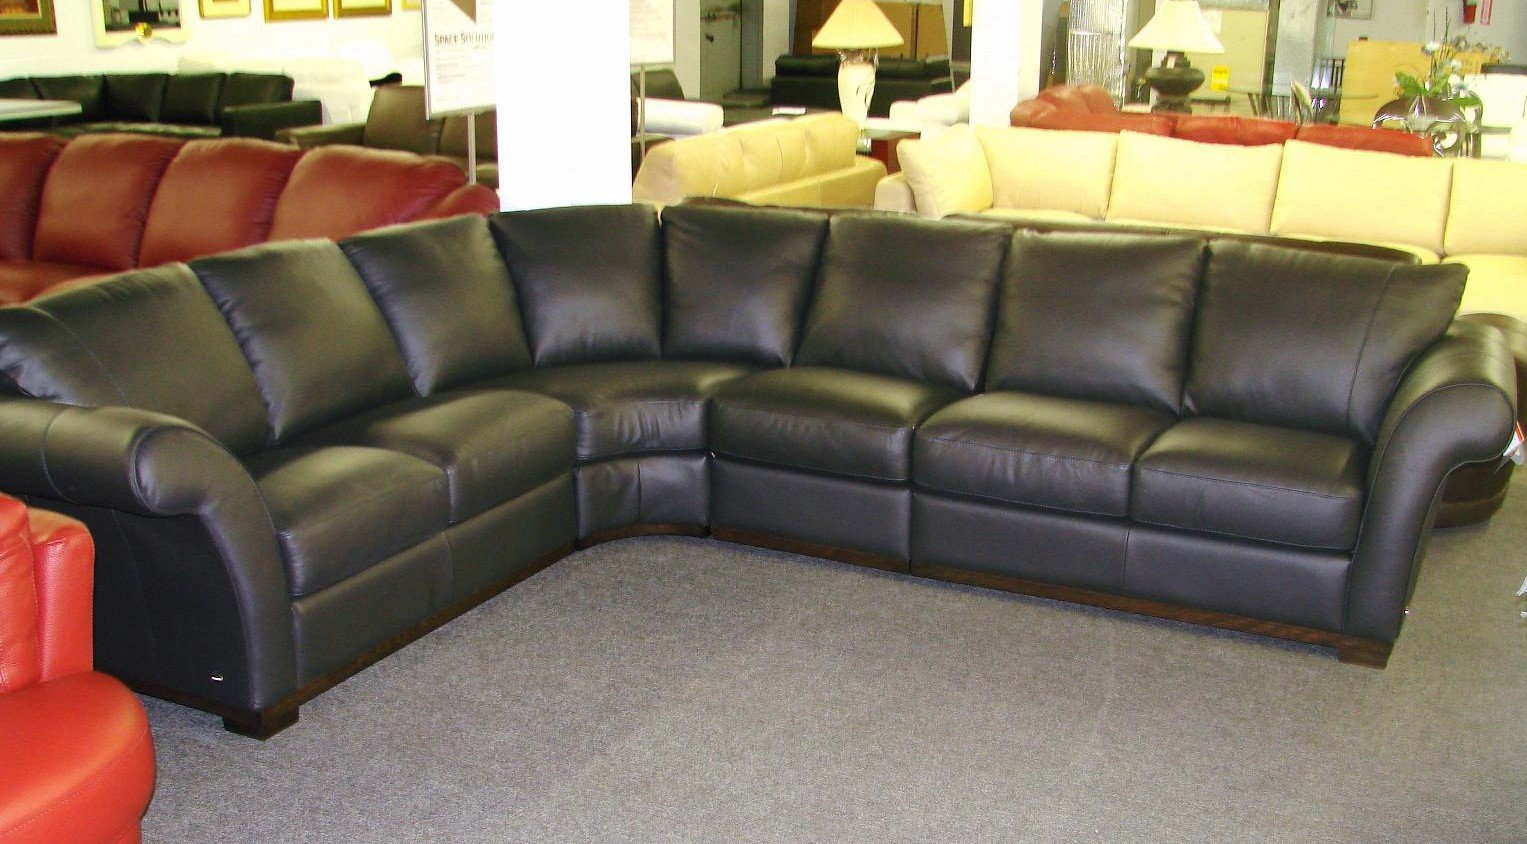 Leather Sectionals For Sale Natuzzi Leather Sofas And Sectionals By Interior Concepts